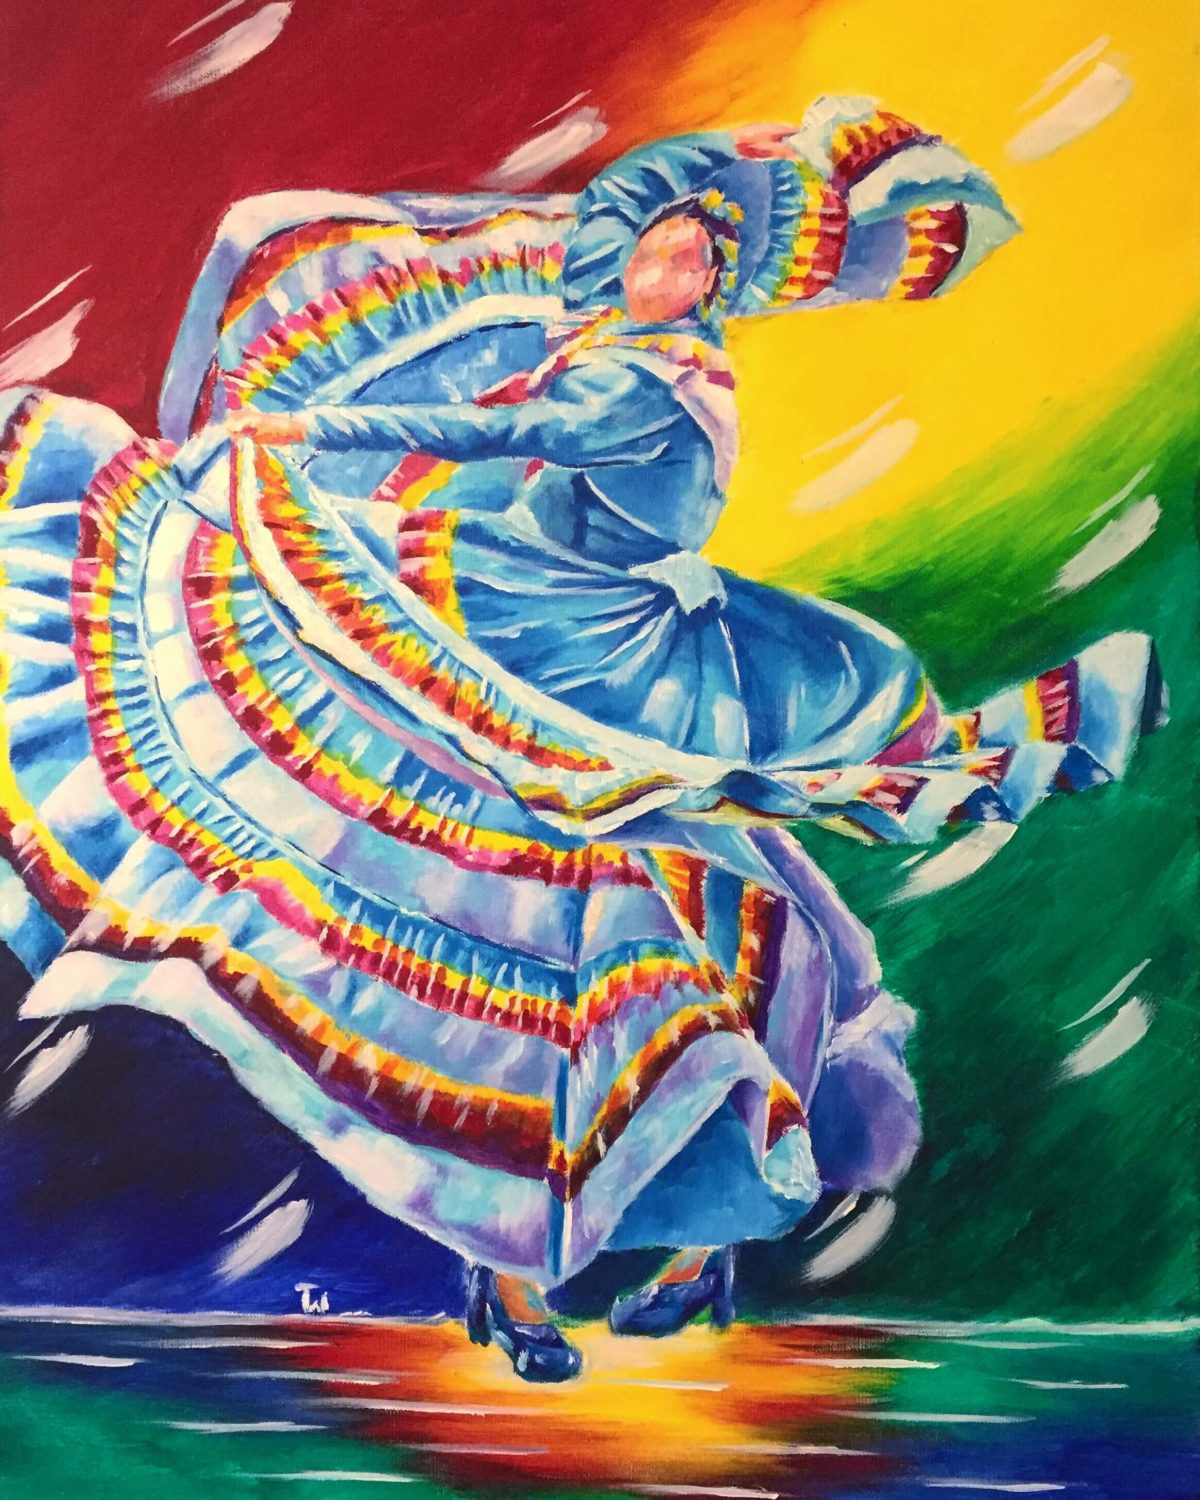 Movimiento 22x28 Acrylic on Canvas by Taylor Wise